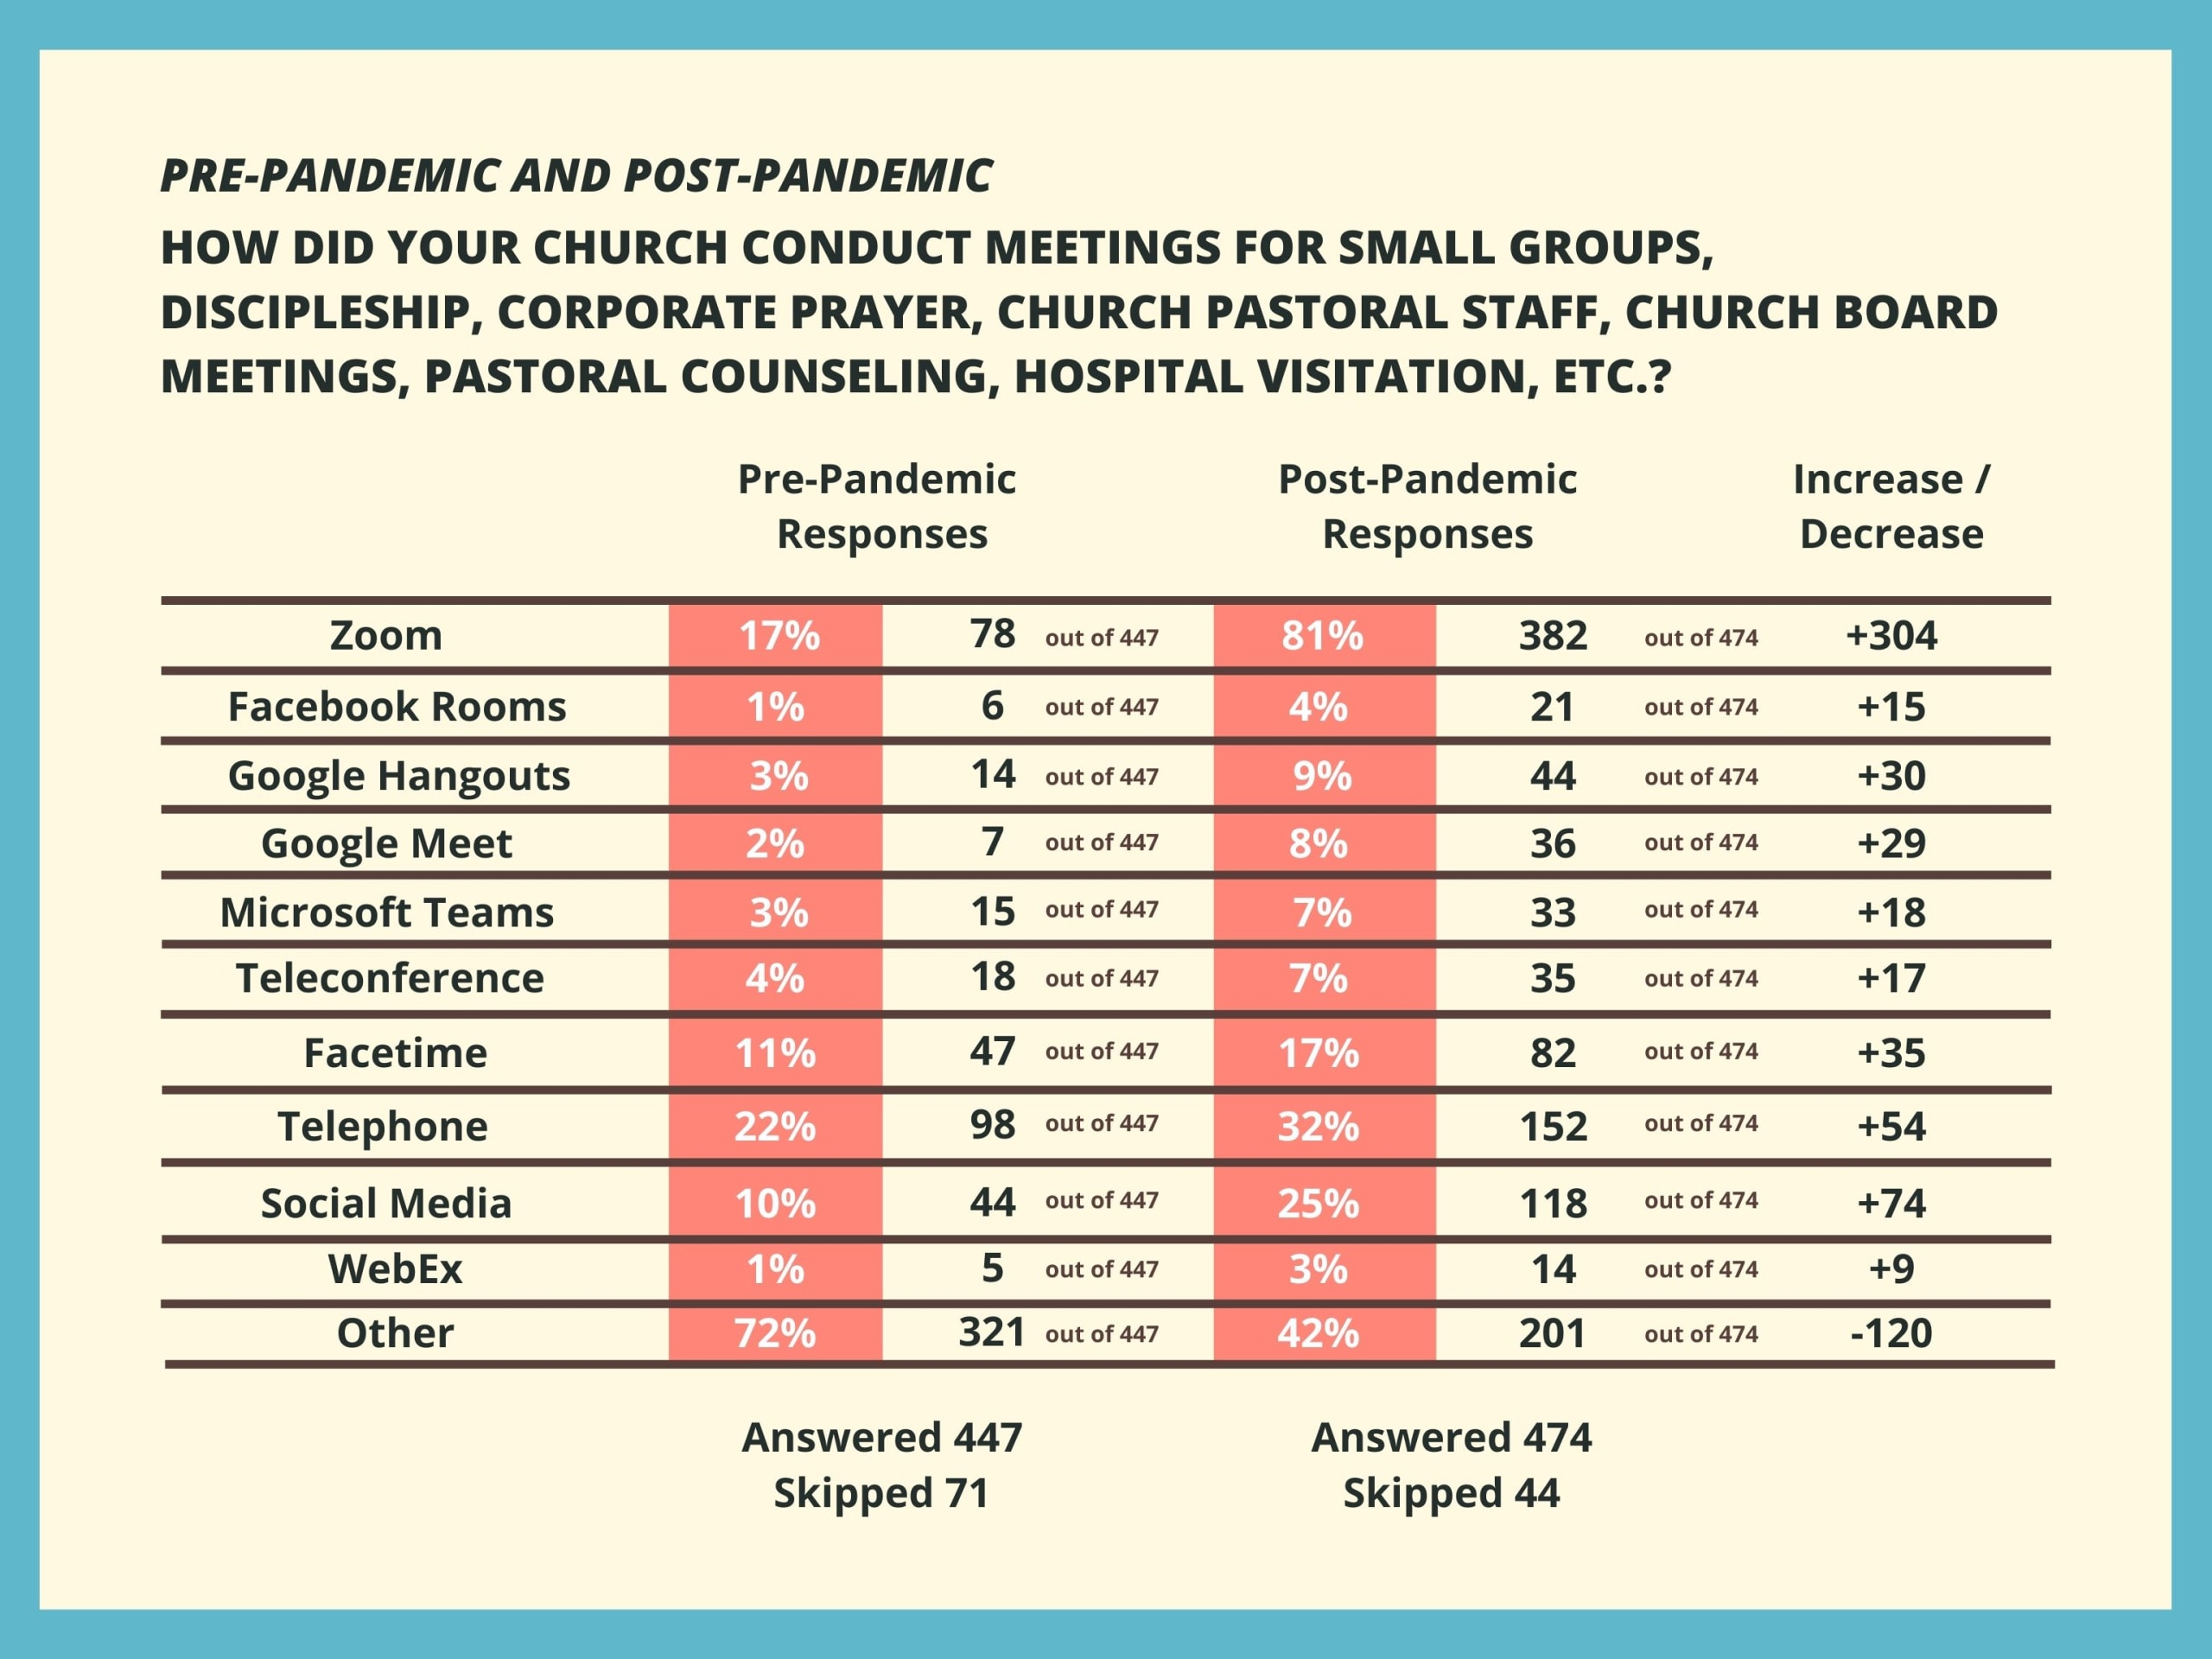 """Table 3 describing the response to """"How did your church conduct meetings for small groups, discipleship, corporate prayer, church pastoral staff, church board meetings, pastoral counseling, hospital visitation, etc.?"""" for pre-pandemic and post-pandemic"""